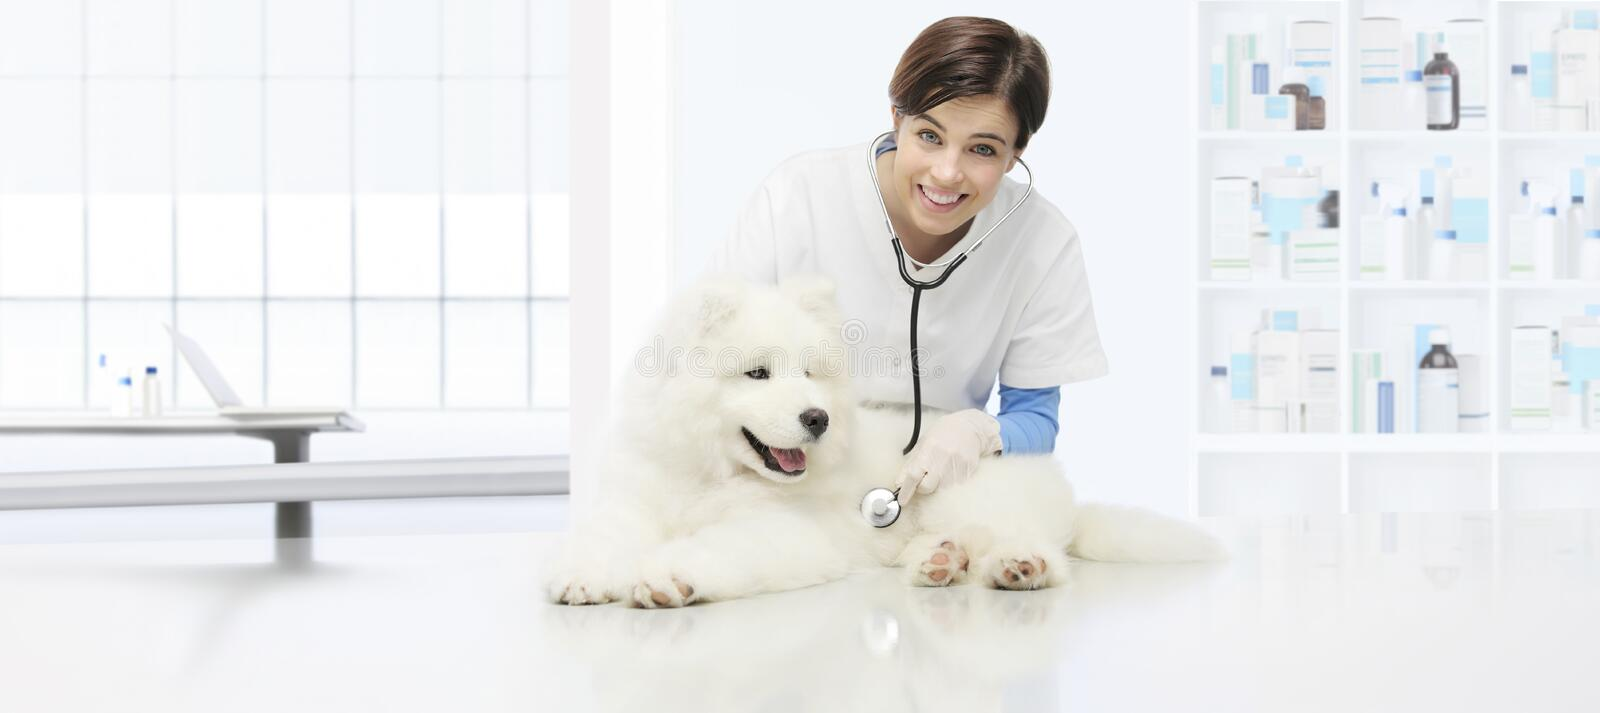 veterinary examination dog, smiling veterinarian with stethoscope on table in vet clinic stock images